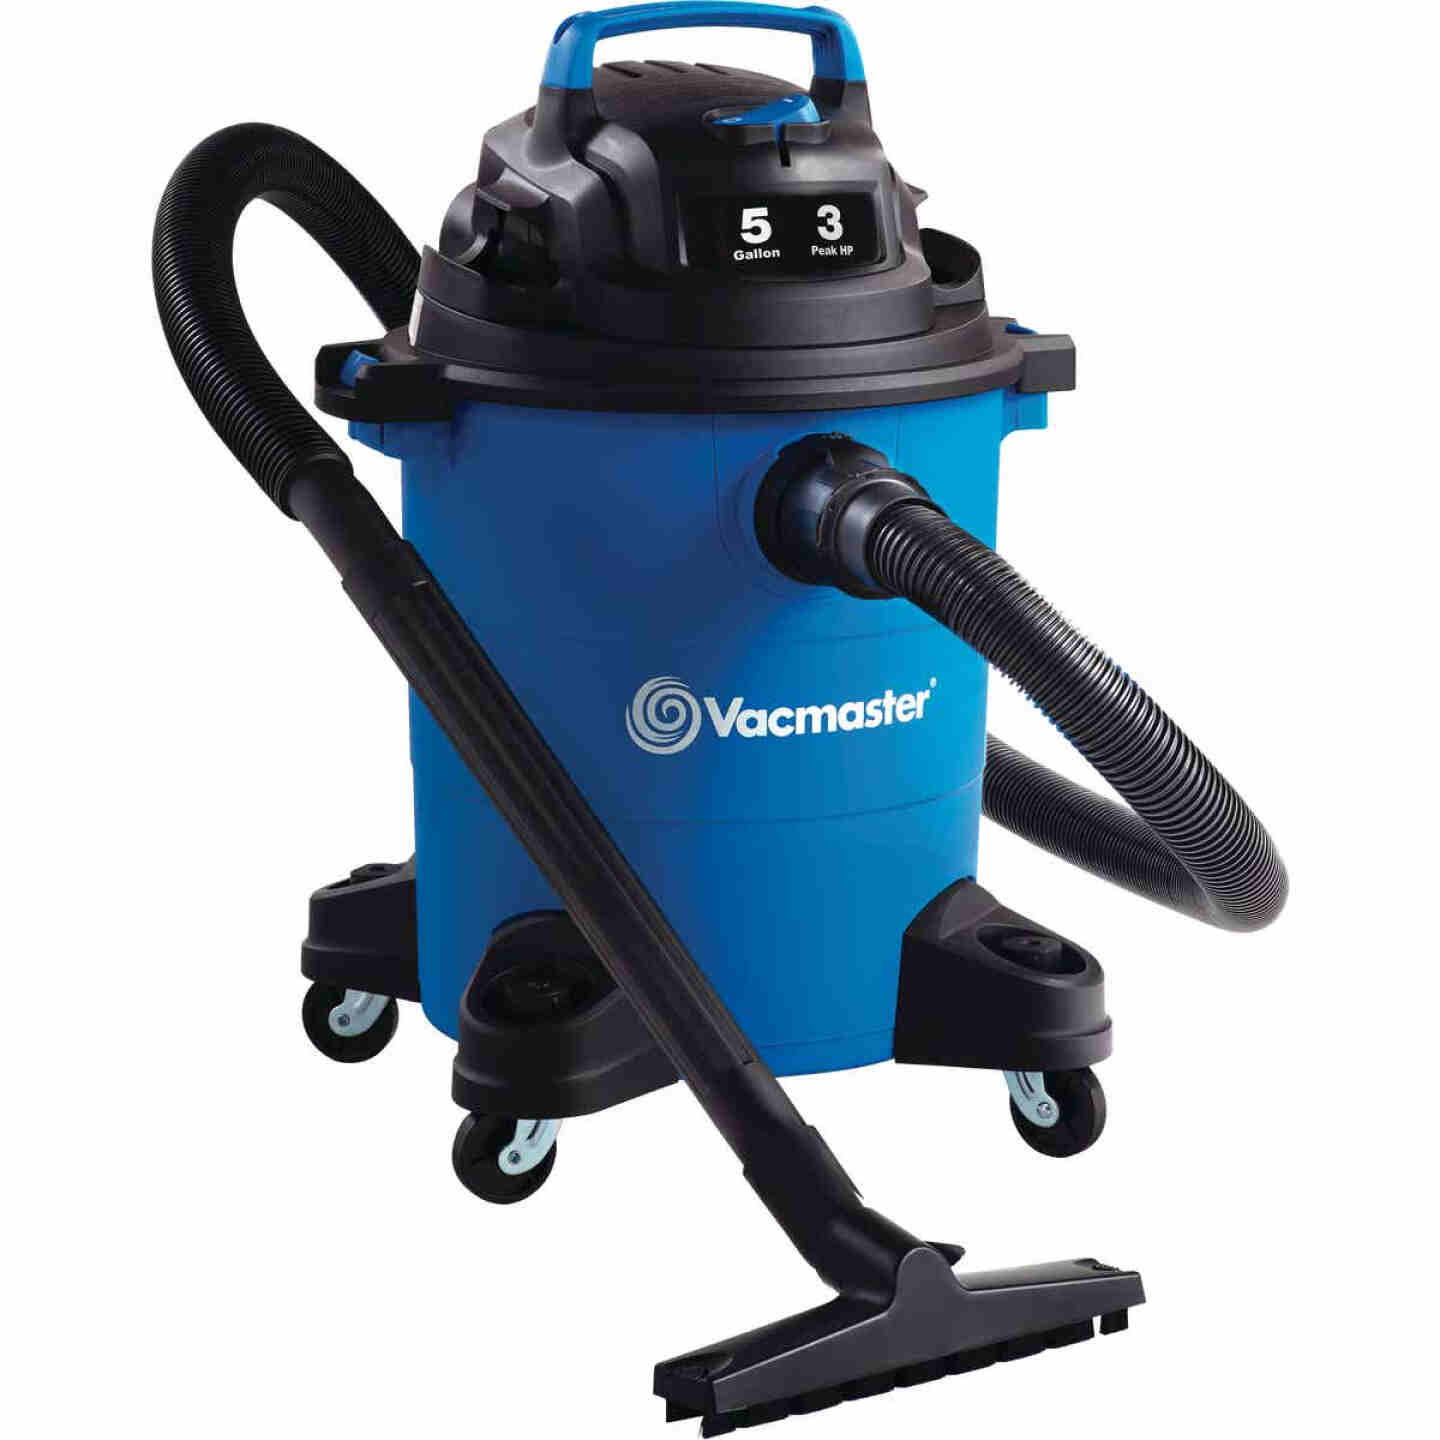 Vacmaster 5-Gallon 3.0 Peak HP Wet/Dry Vacuum Image 1